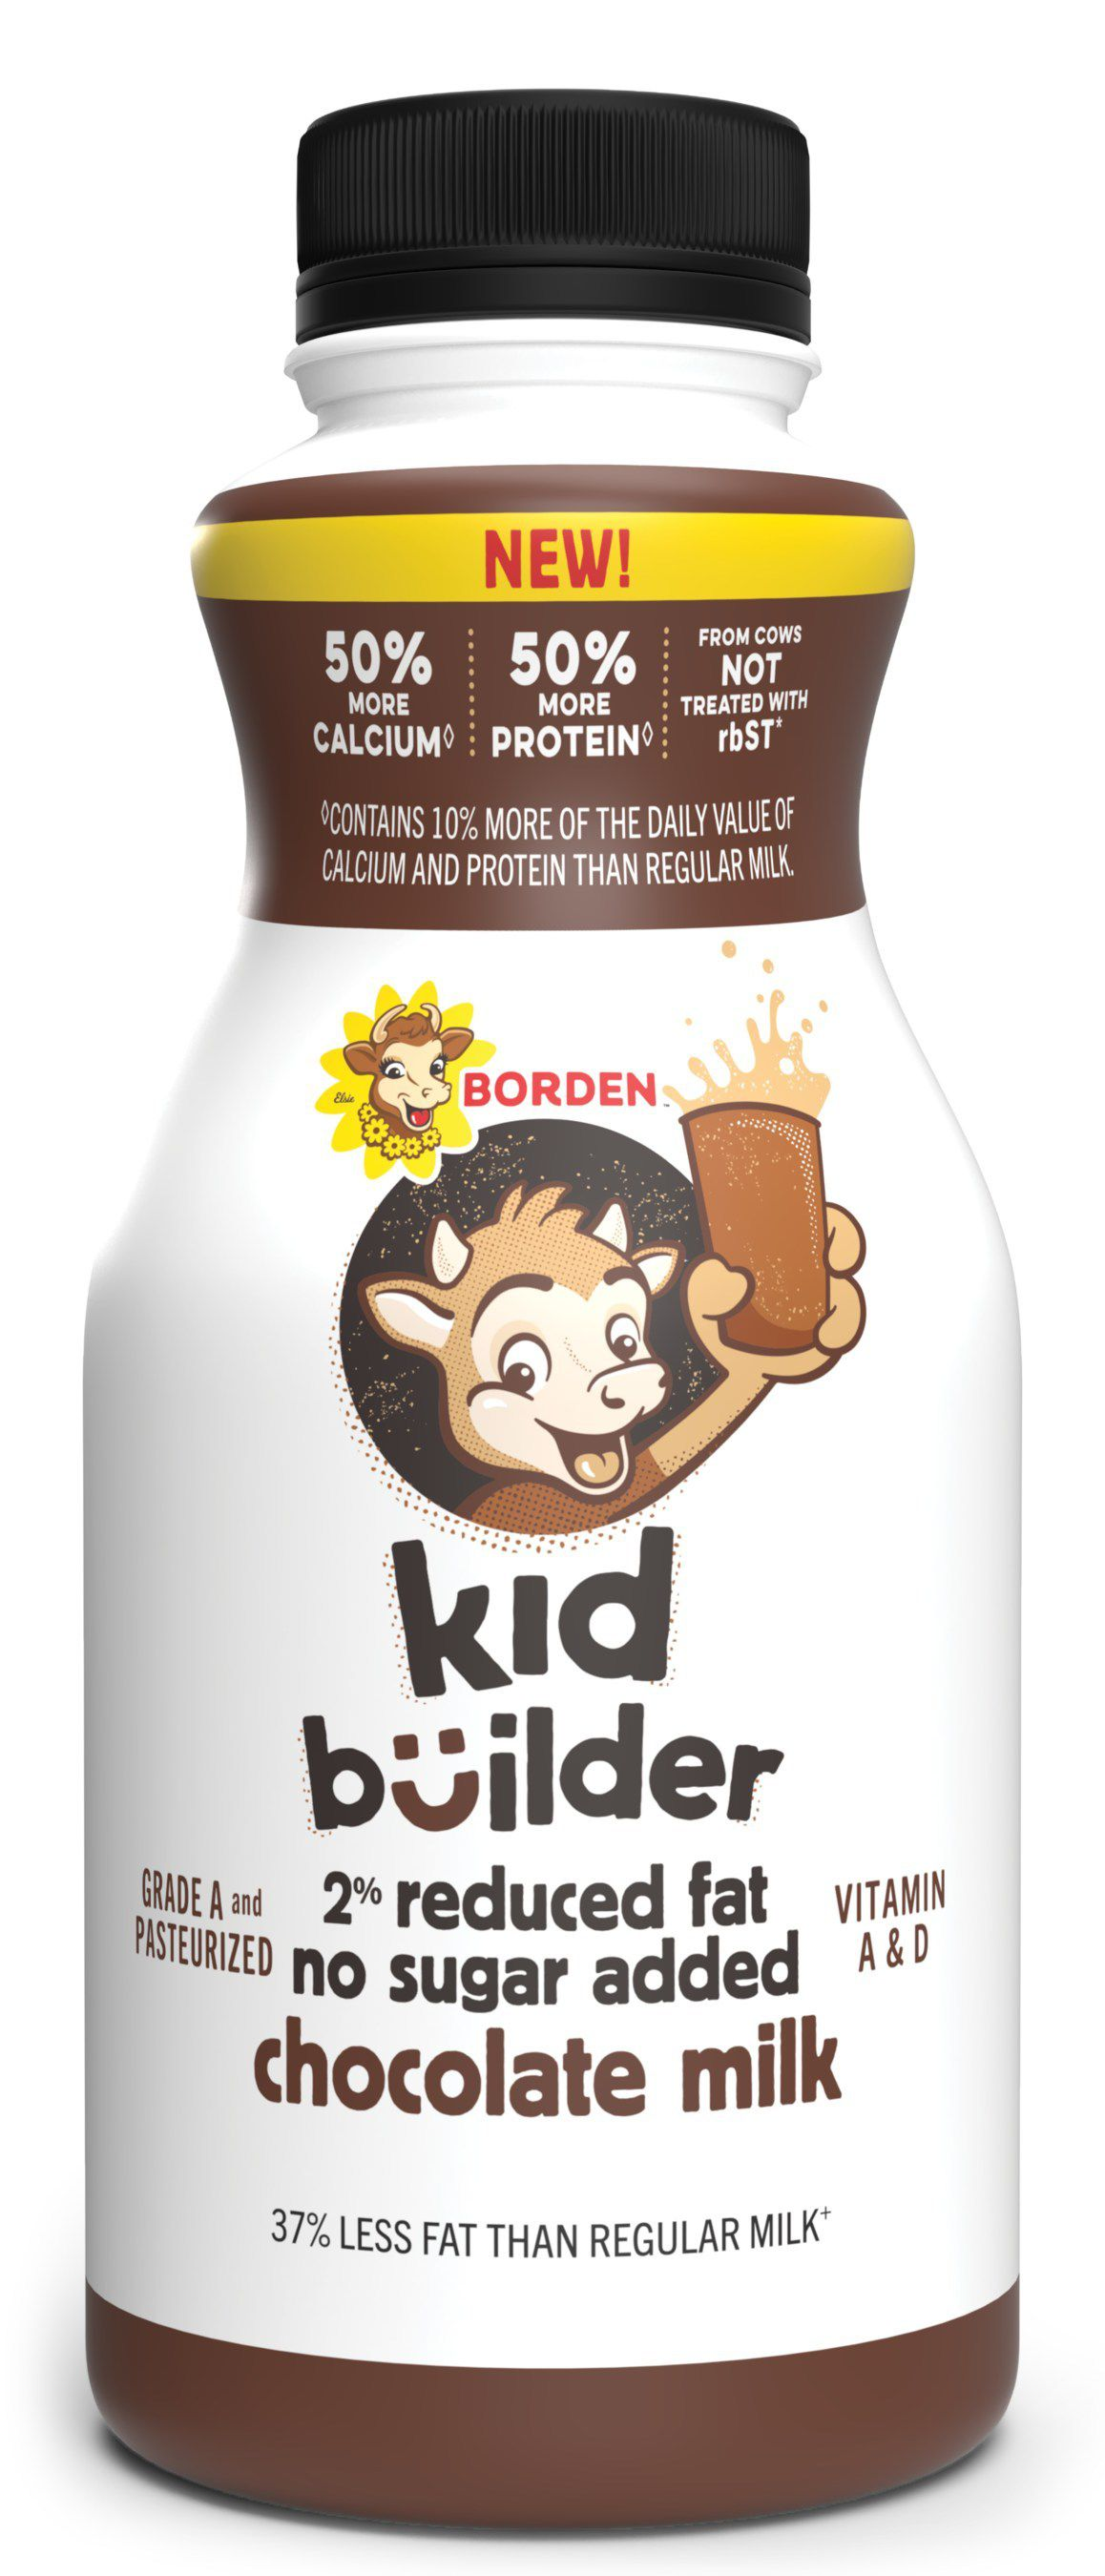 To diversify its revenue, Borden's has created new products like a high-protein flavored milk drink called Kid Builder as well as Gingerbread Egg Nog and new refrigerated dips.